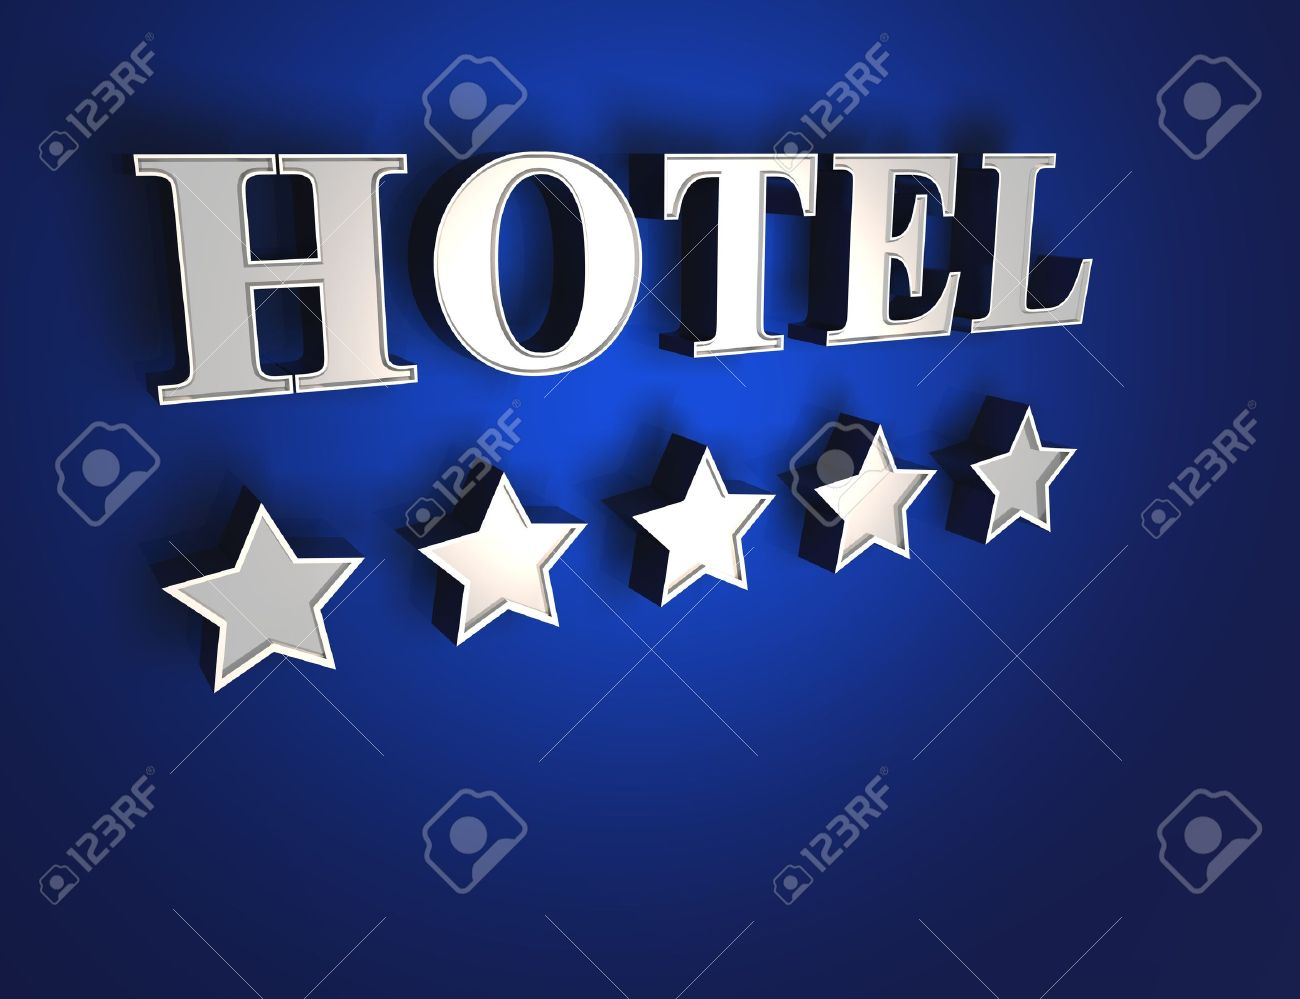 5 star hotel sign - Blue on Silver Stock Photo - 14401386